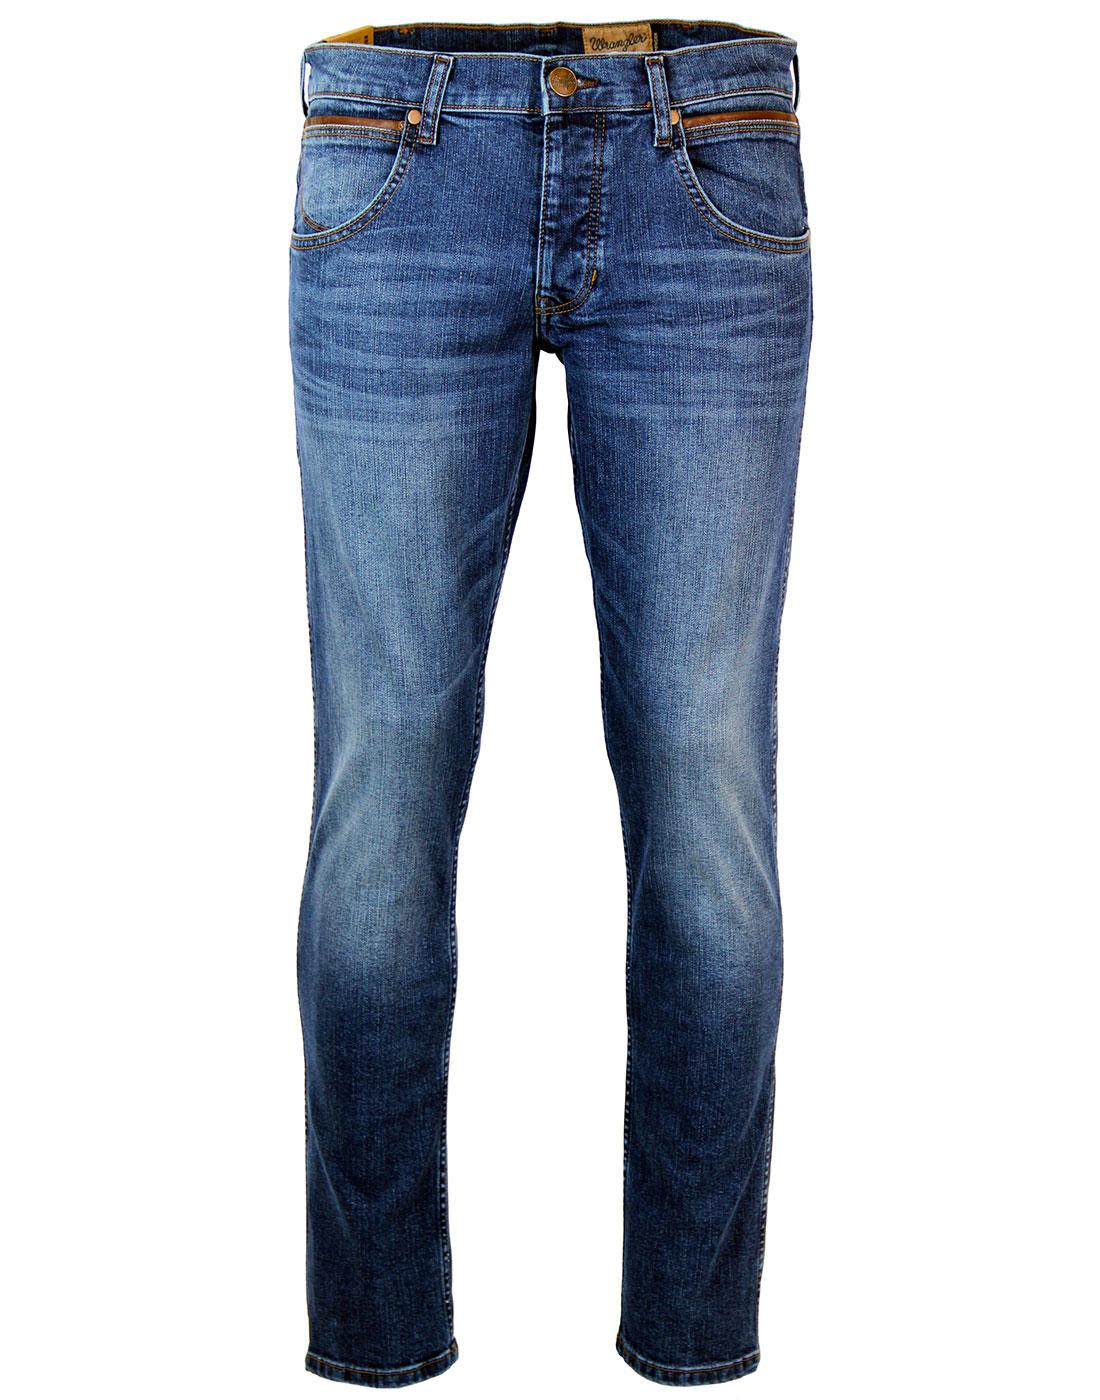 Spencer WRANGLER Retro Relaxed Slim Denim Jeans